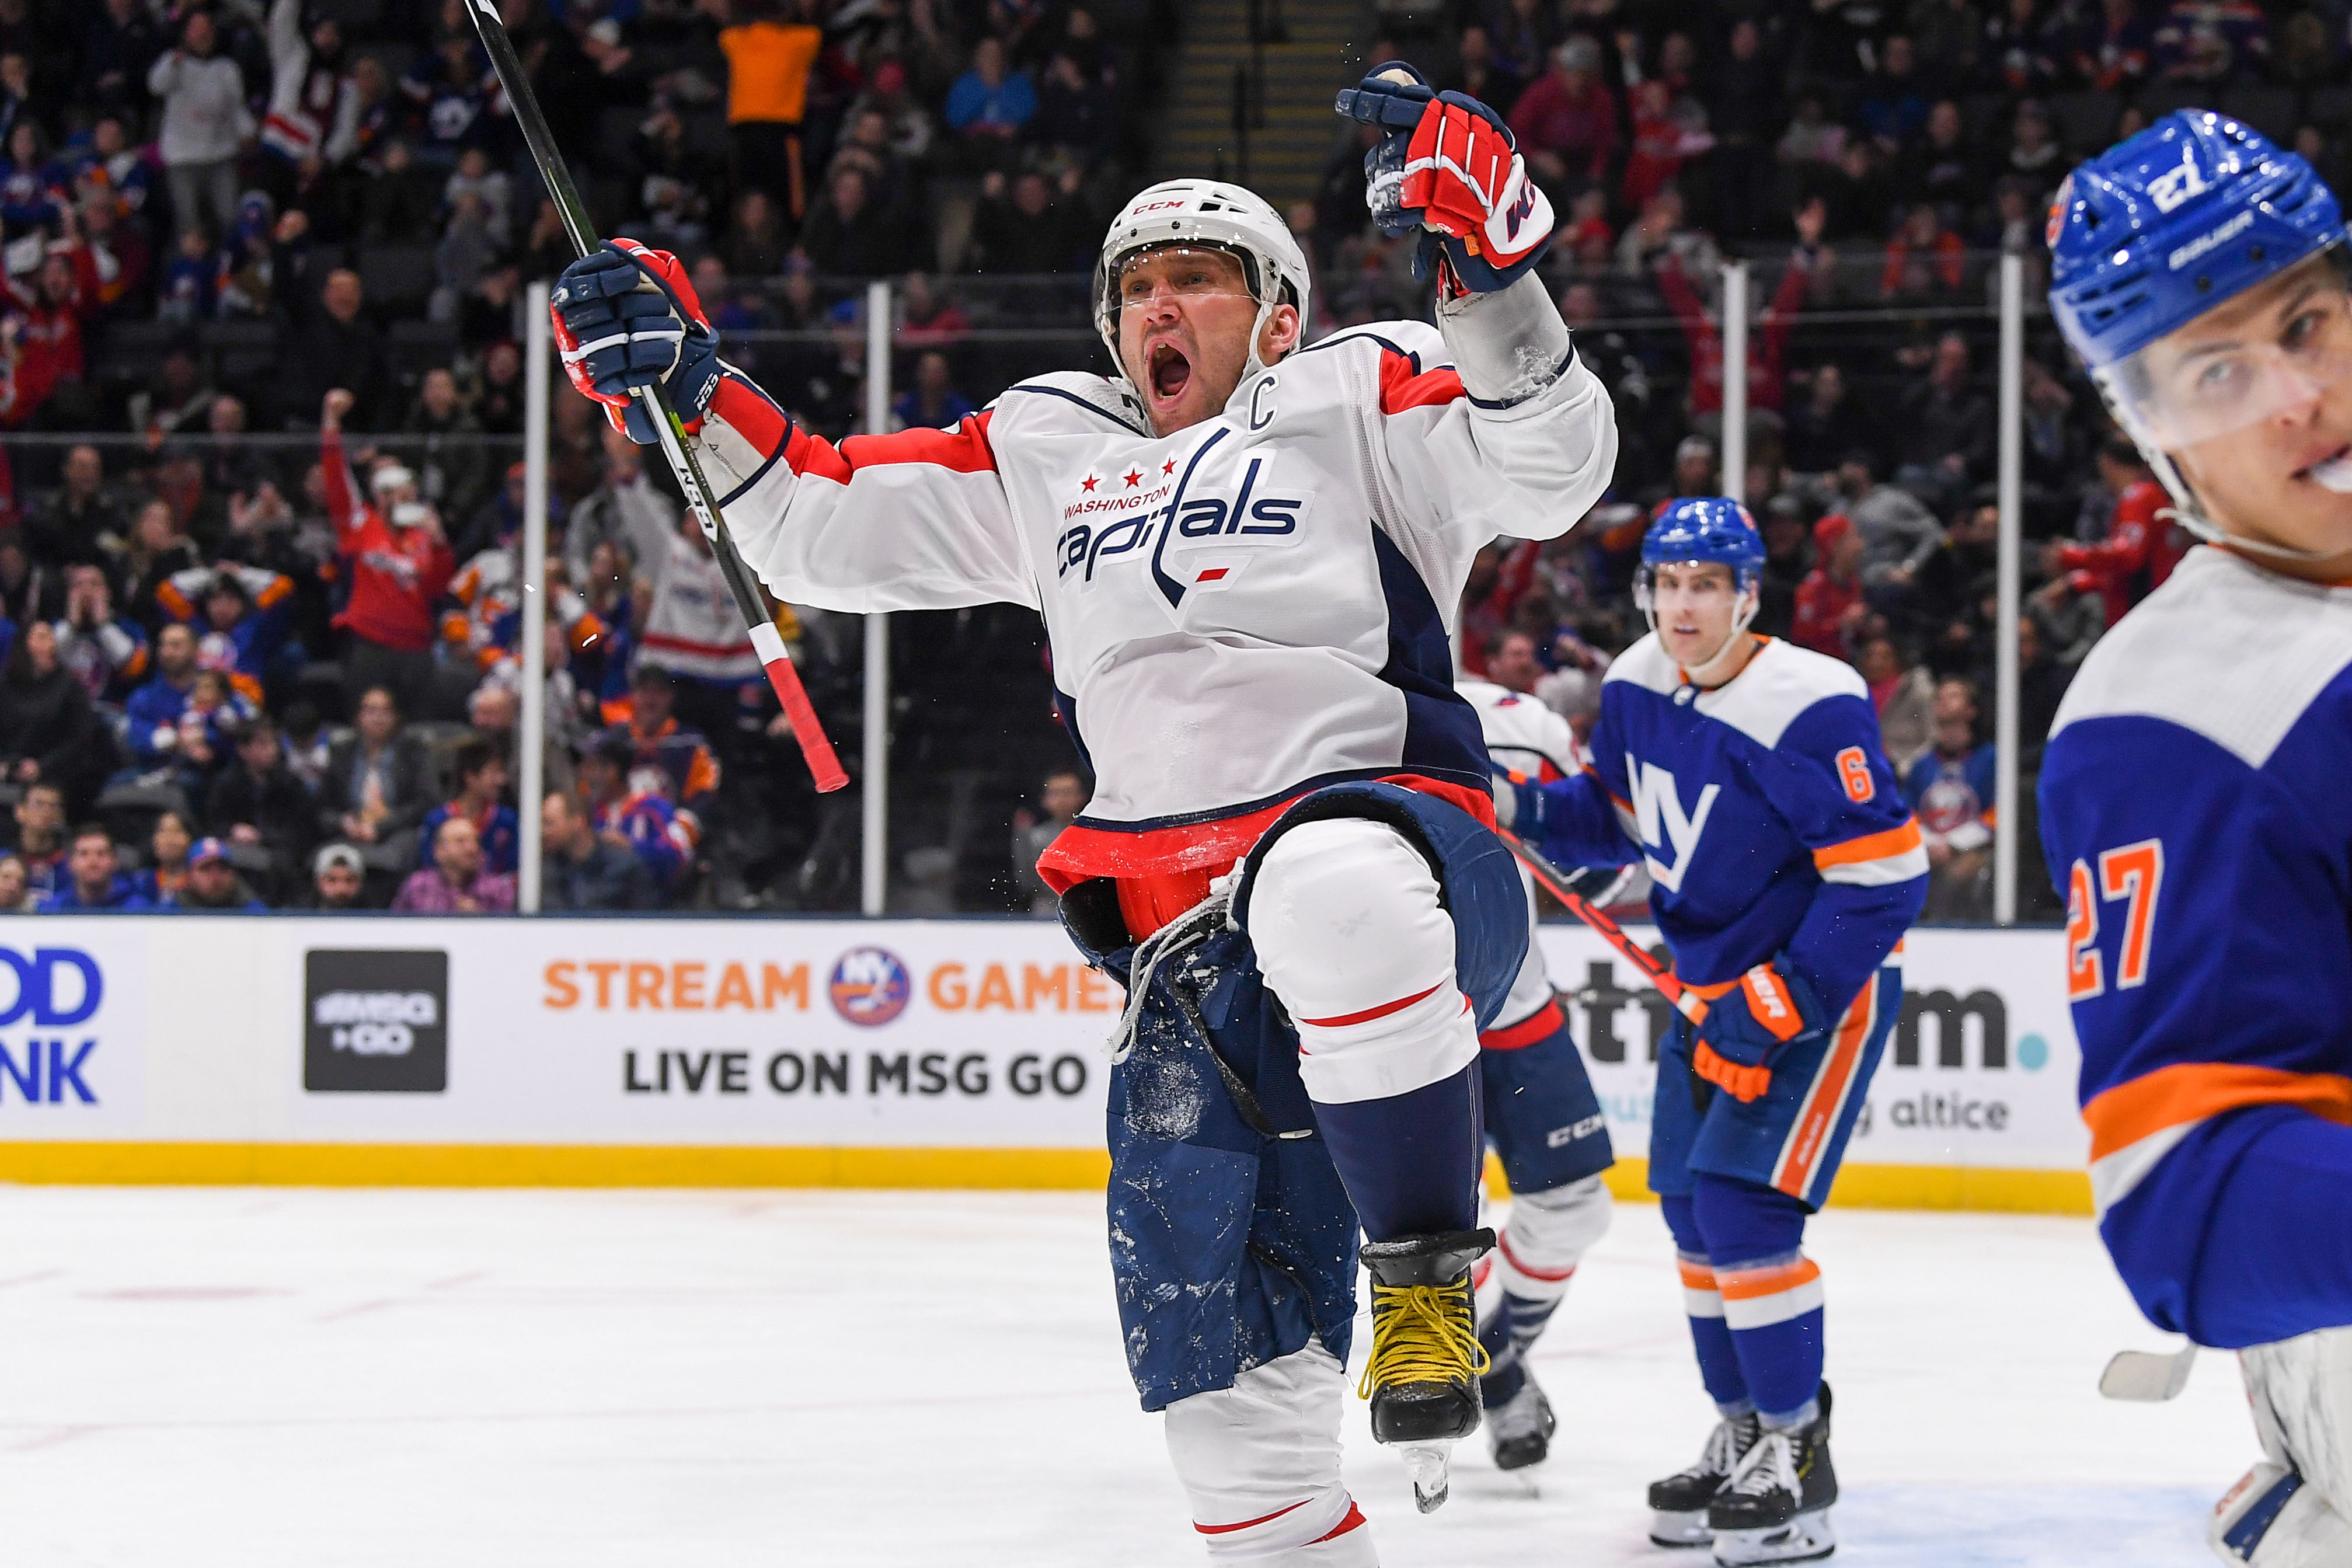 Jan 18, 2020; Uniondale, New York, USA; Washington Capitals left wing Alex Ovechkin (8) celebrate after scoring a goal against the New York Islanders during the third period at Nassau Veterans Memorial Coliseum. Mandatory Credit: Dennis Schneidler-USA TODAY Sports